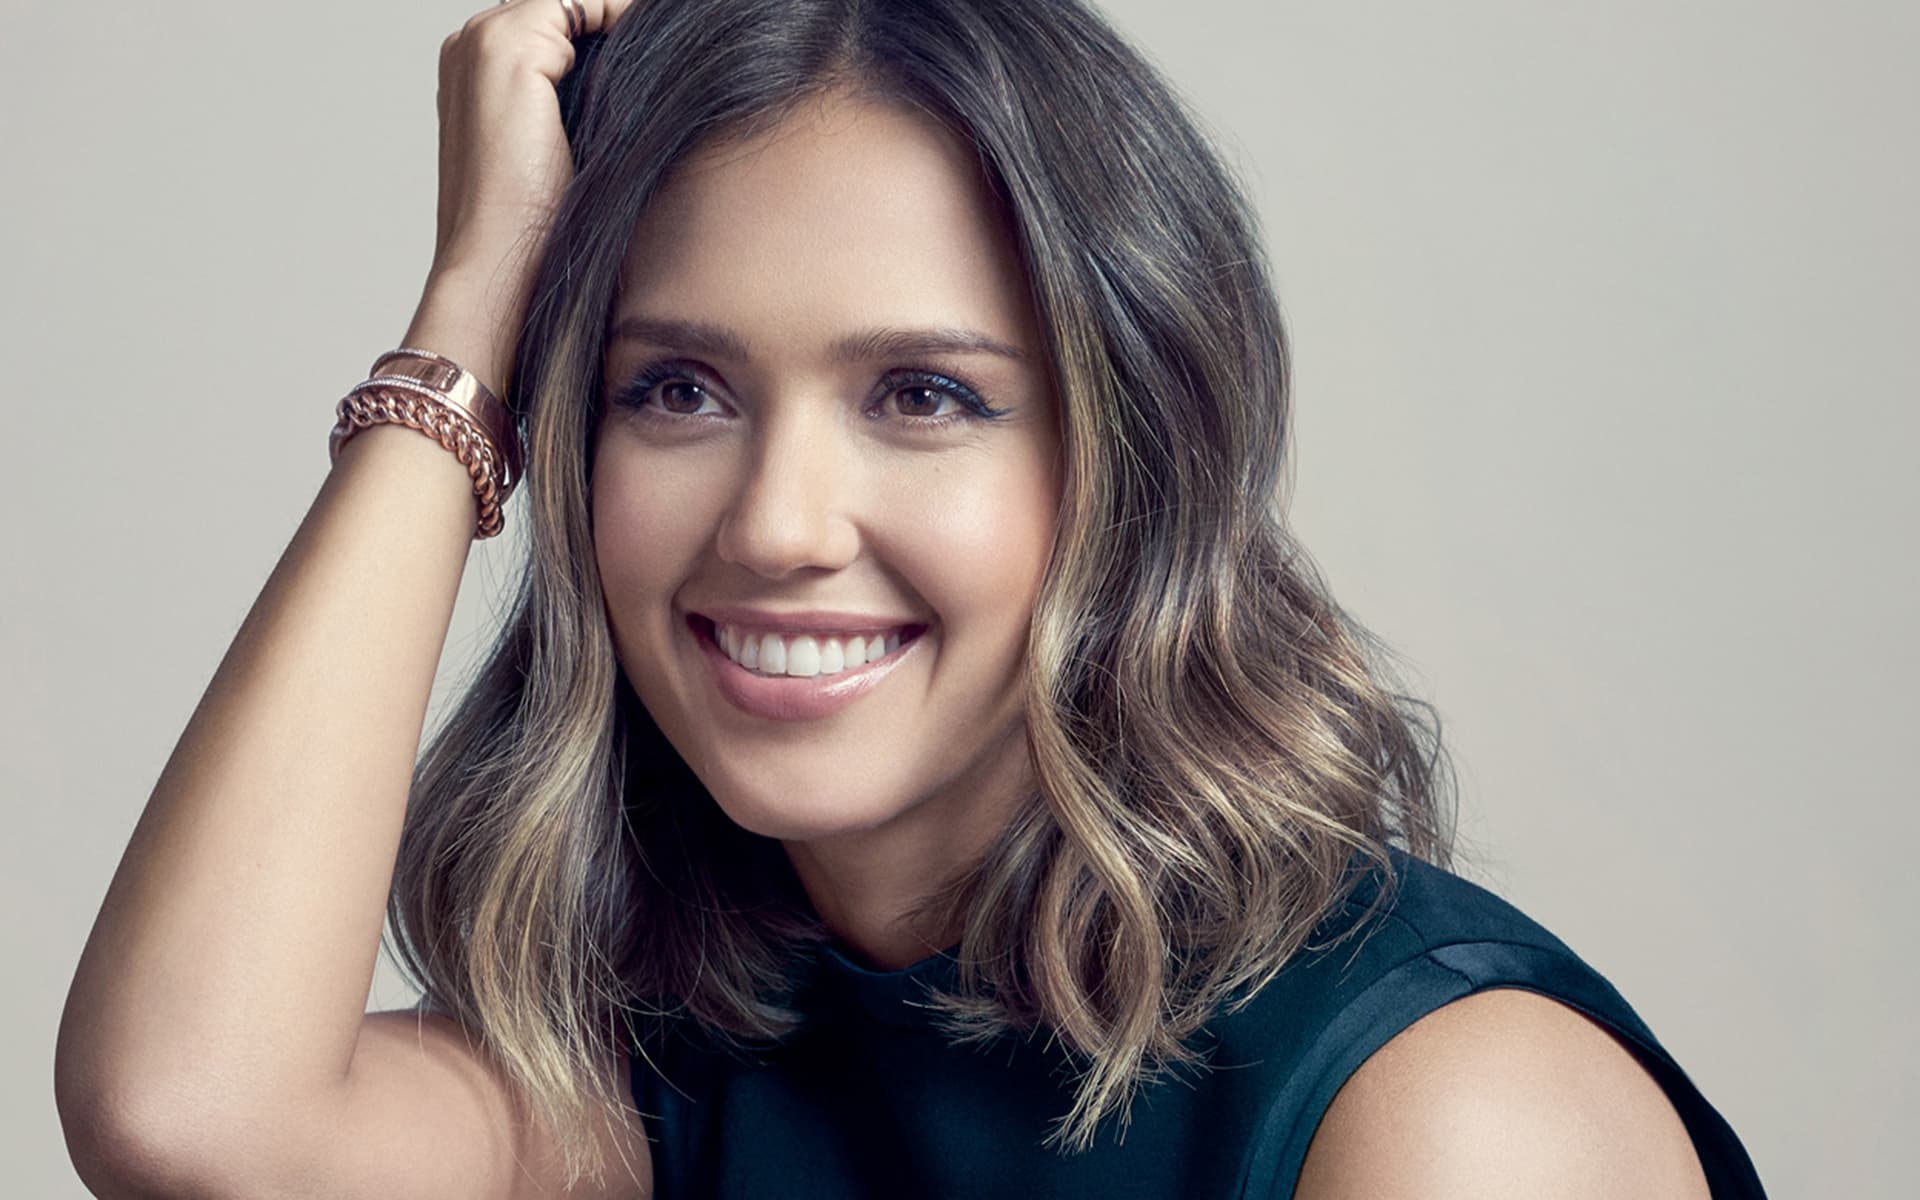 jessica alba wallpaper pc - photo #30